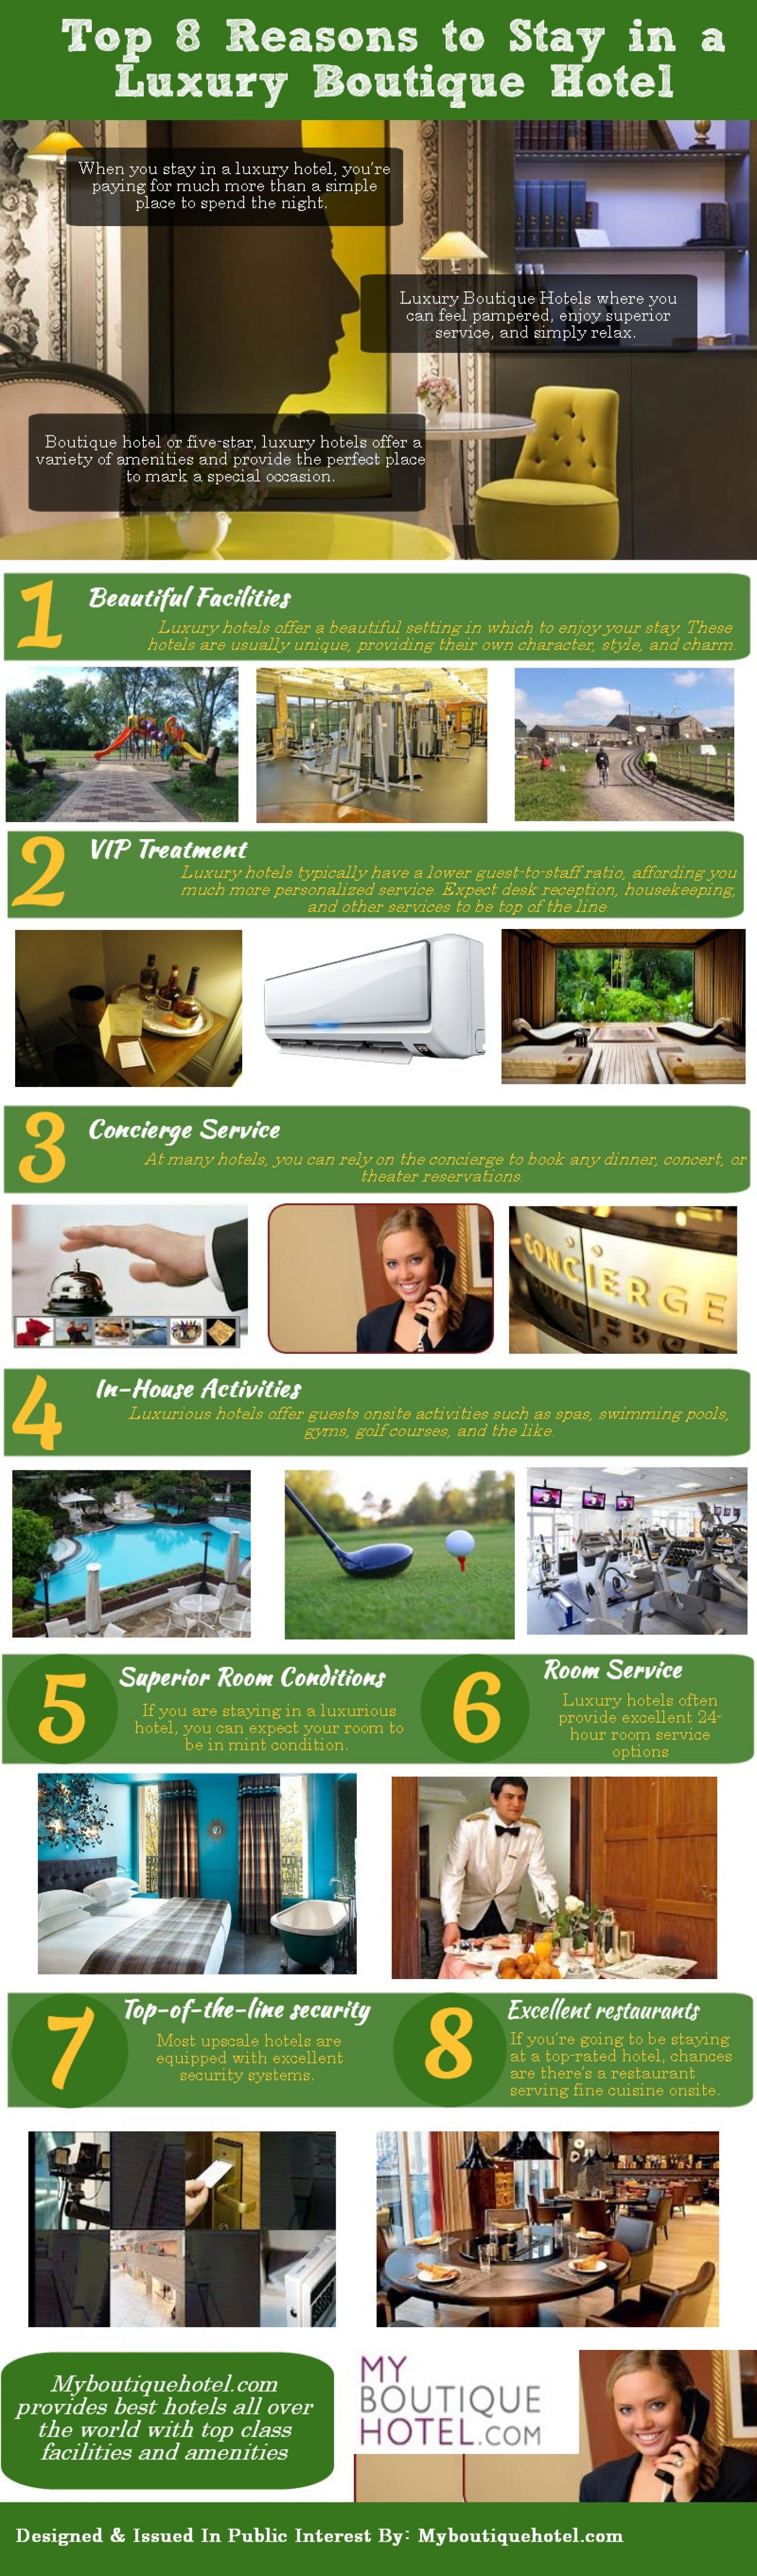 Top 8 Reasons to Stay in a Luxury Boutique Hotels Infographic